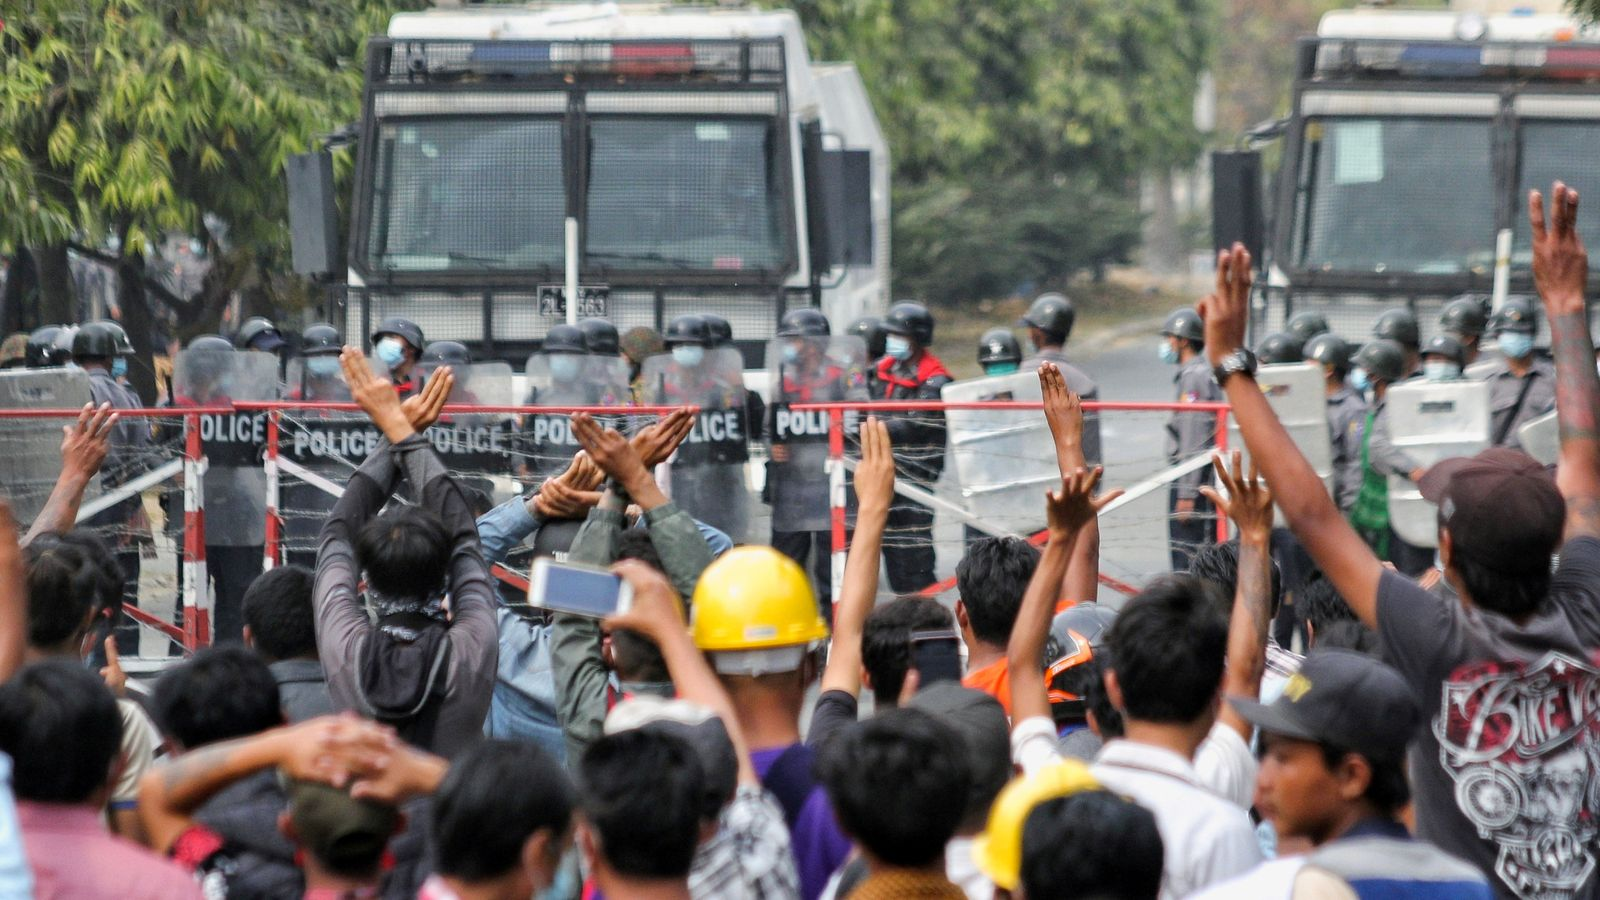 Myanmar: Shooting of protesters 'beyond the pale', says UK foreign secretary